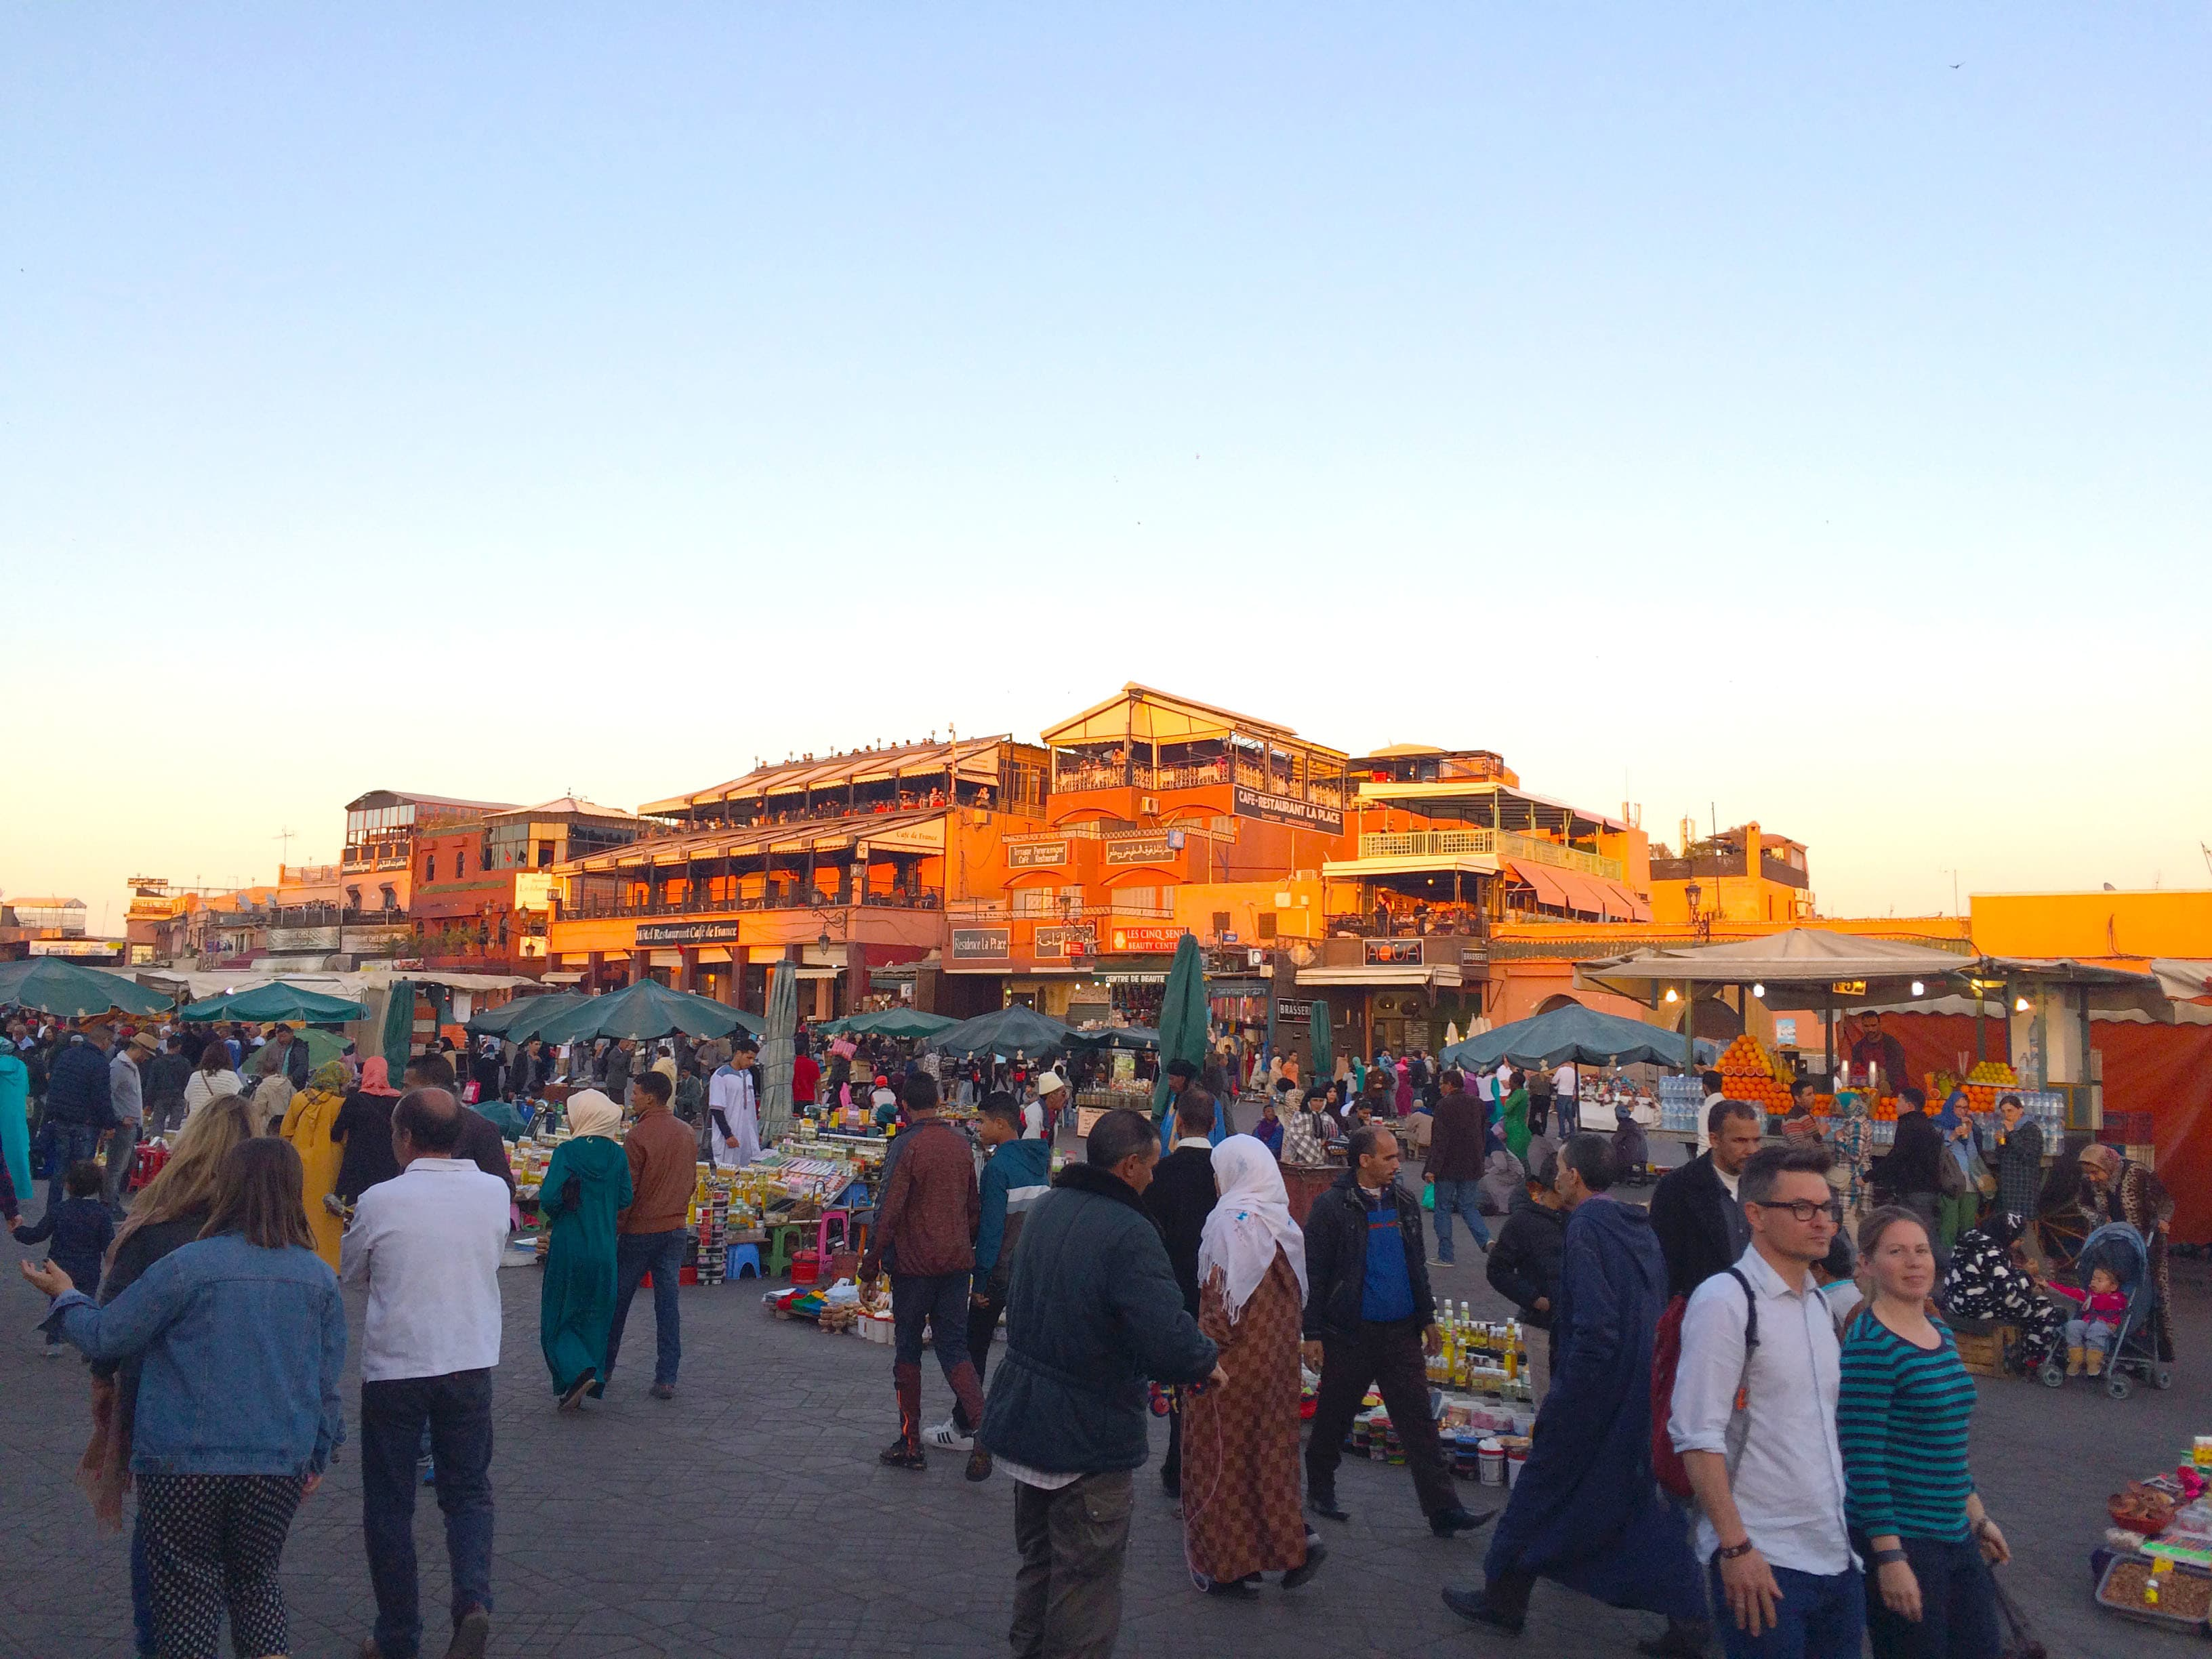 Jemaa El Fna market being set up in the evening.